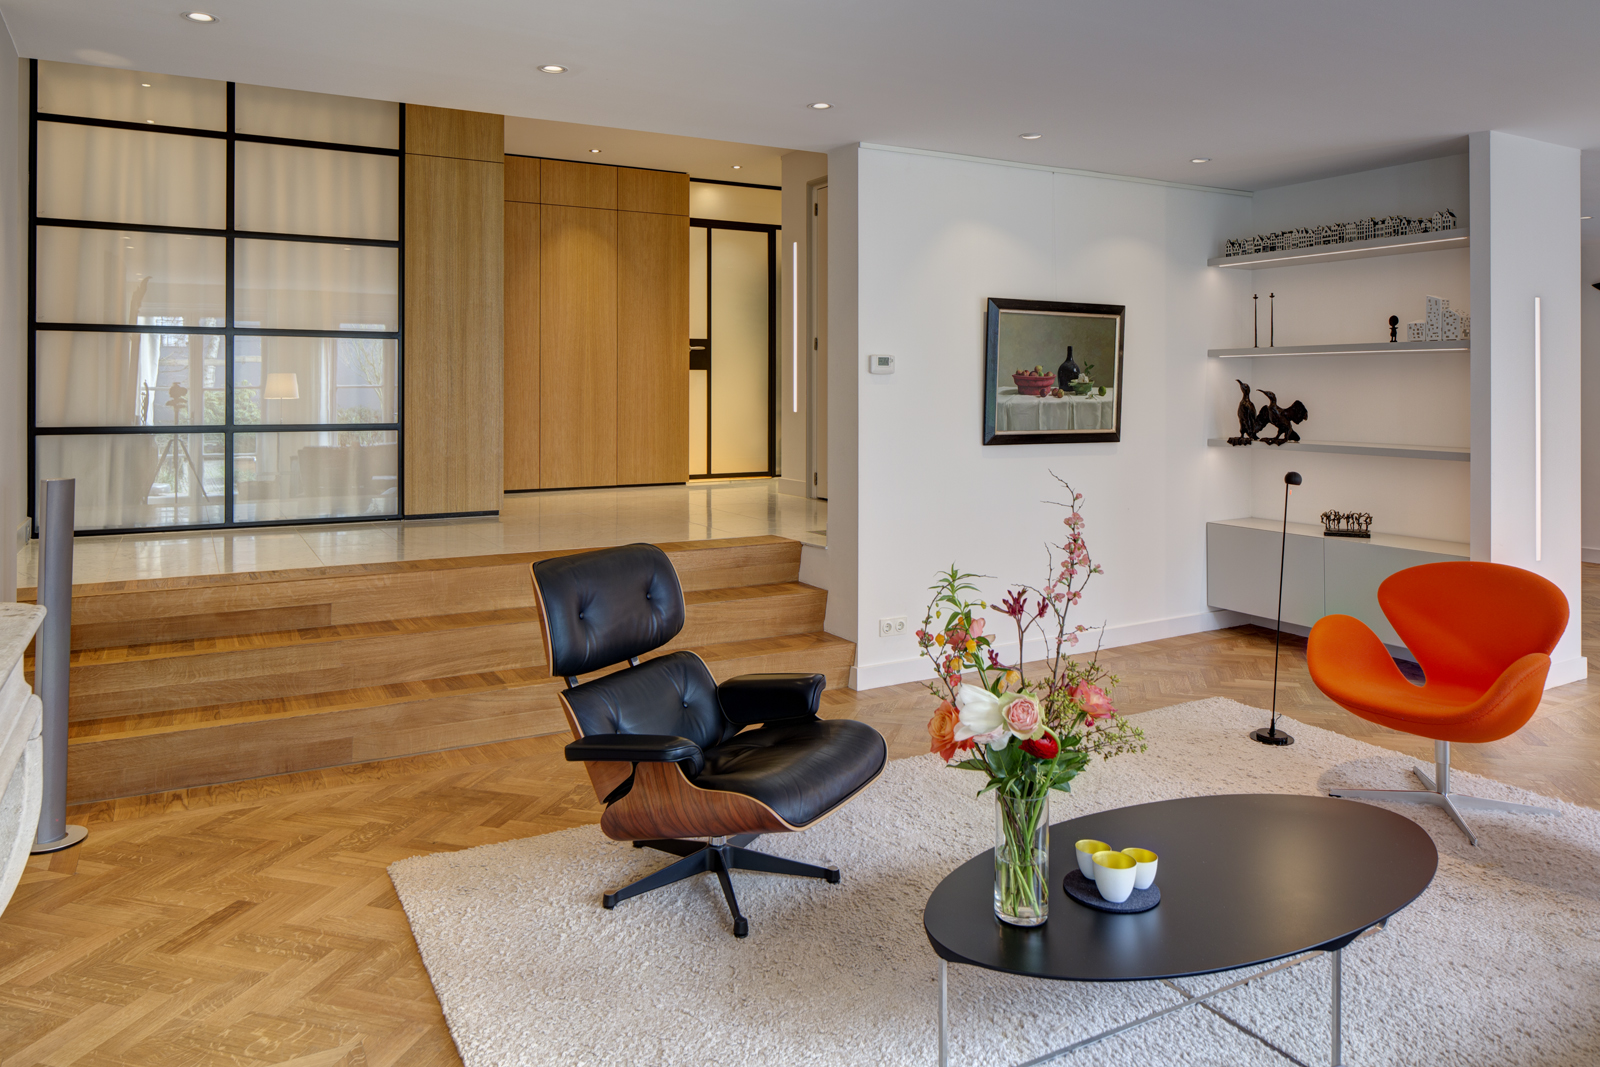 Verbouwing appartement Herengracht Amsterdam